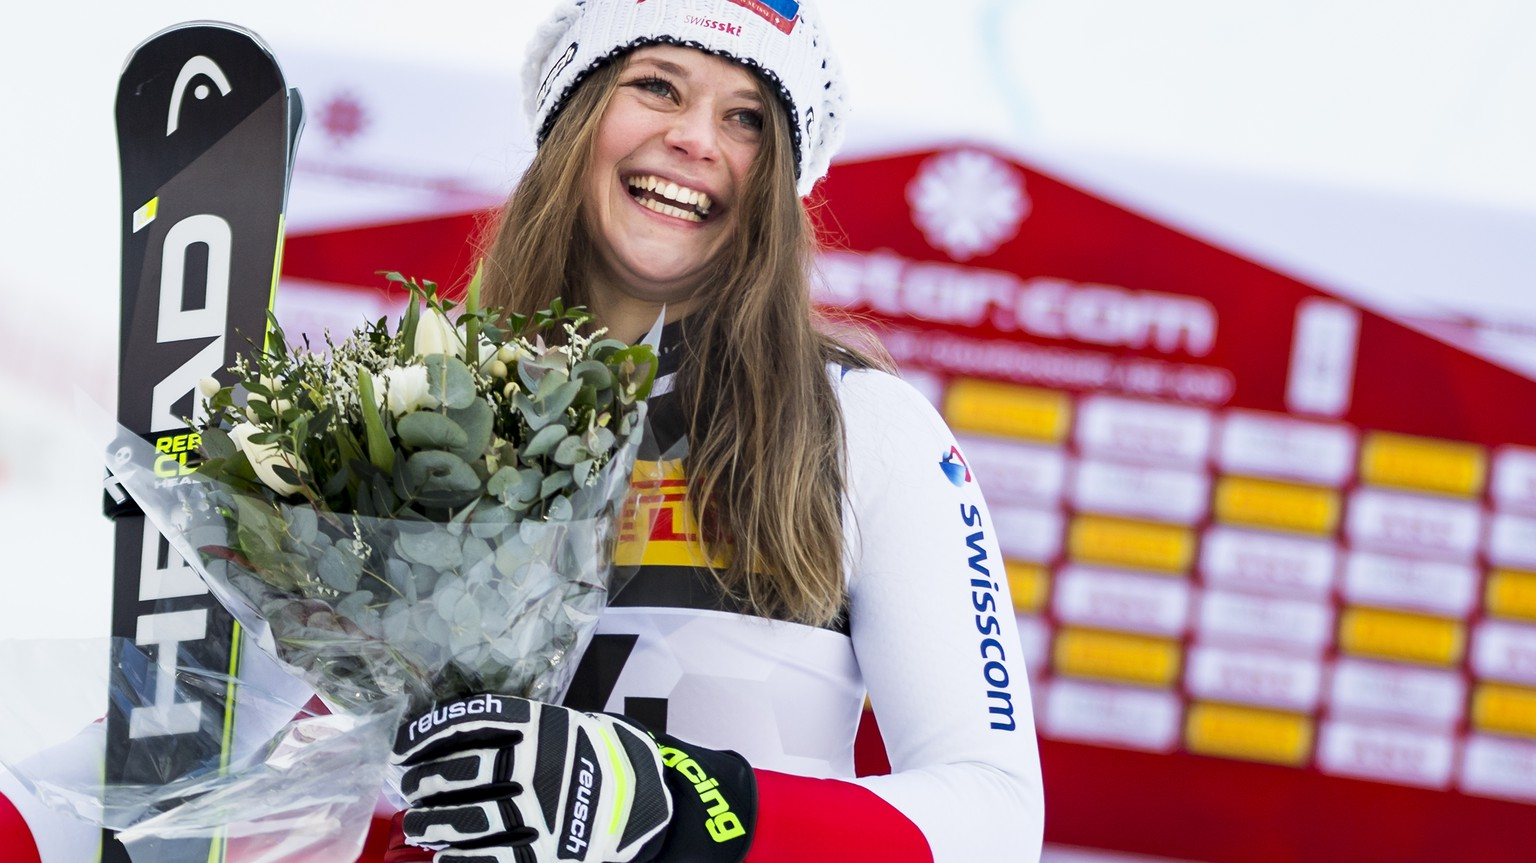 Corinne Suter of Switzerland, bronze medal, celebrates during the flowers cereemony after the women Super-G race at the 2019 FIS Alpine Skiing World Championships in Are, Sweden Tuesday, February 5, 2019. (KEYSTONE/Jean-Christophe Bott)